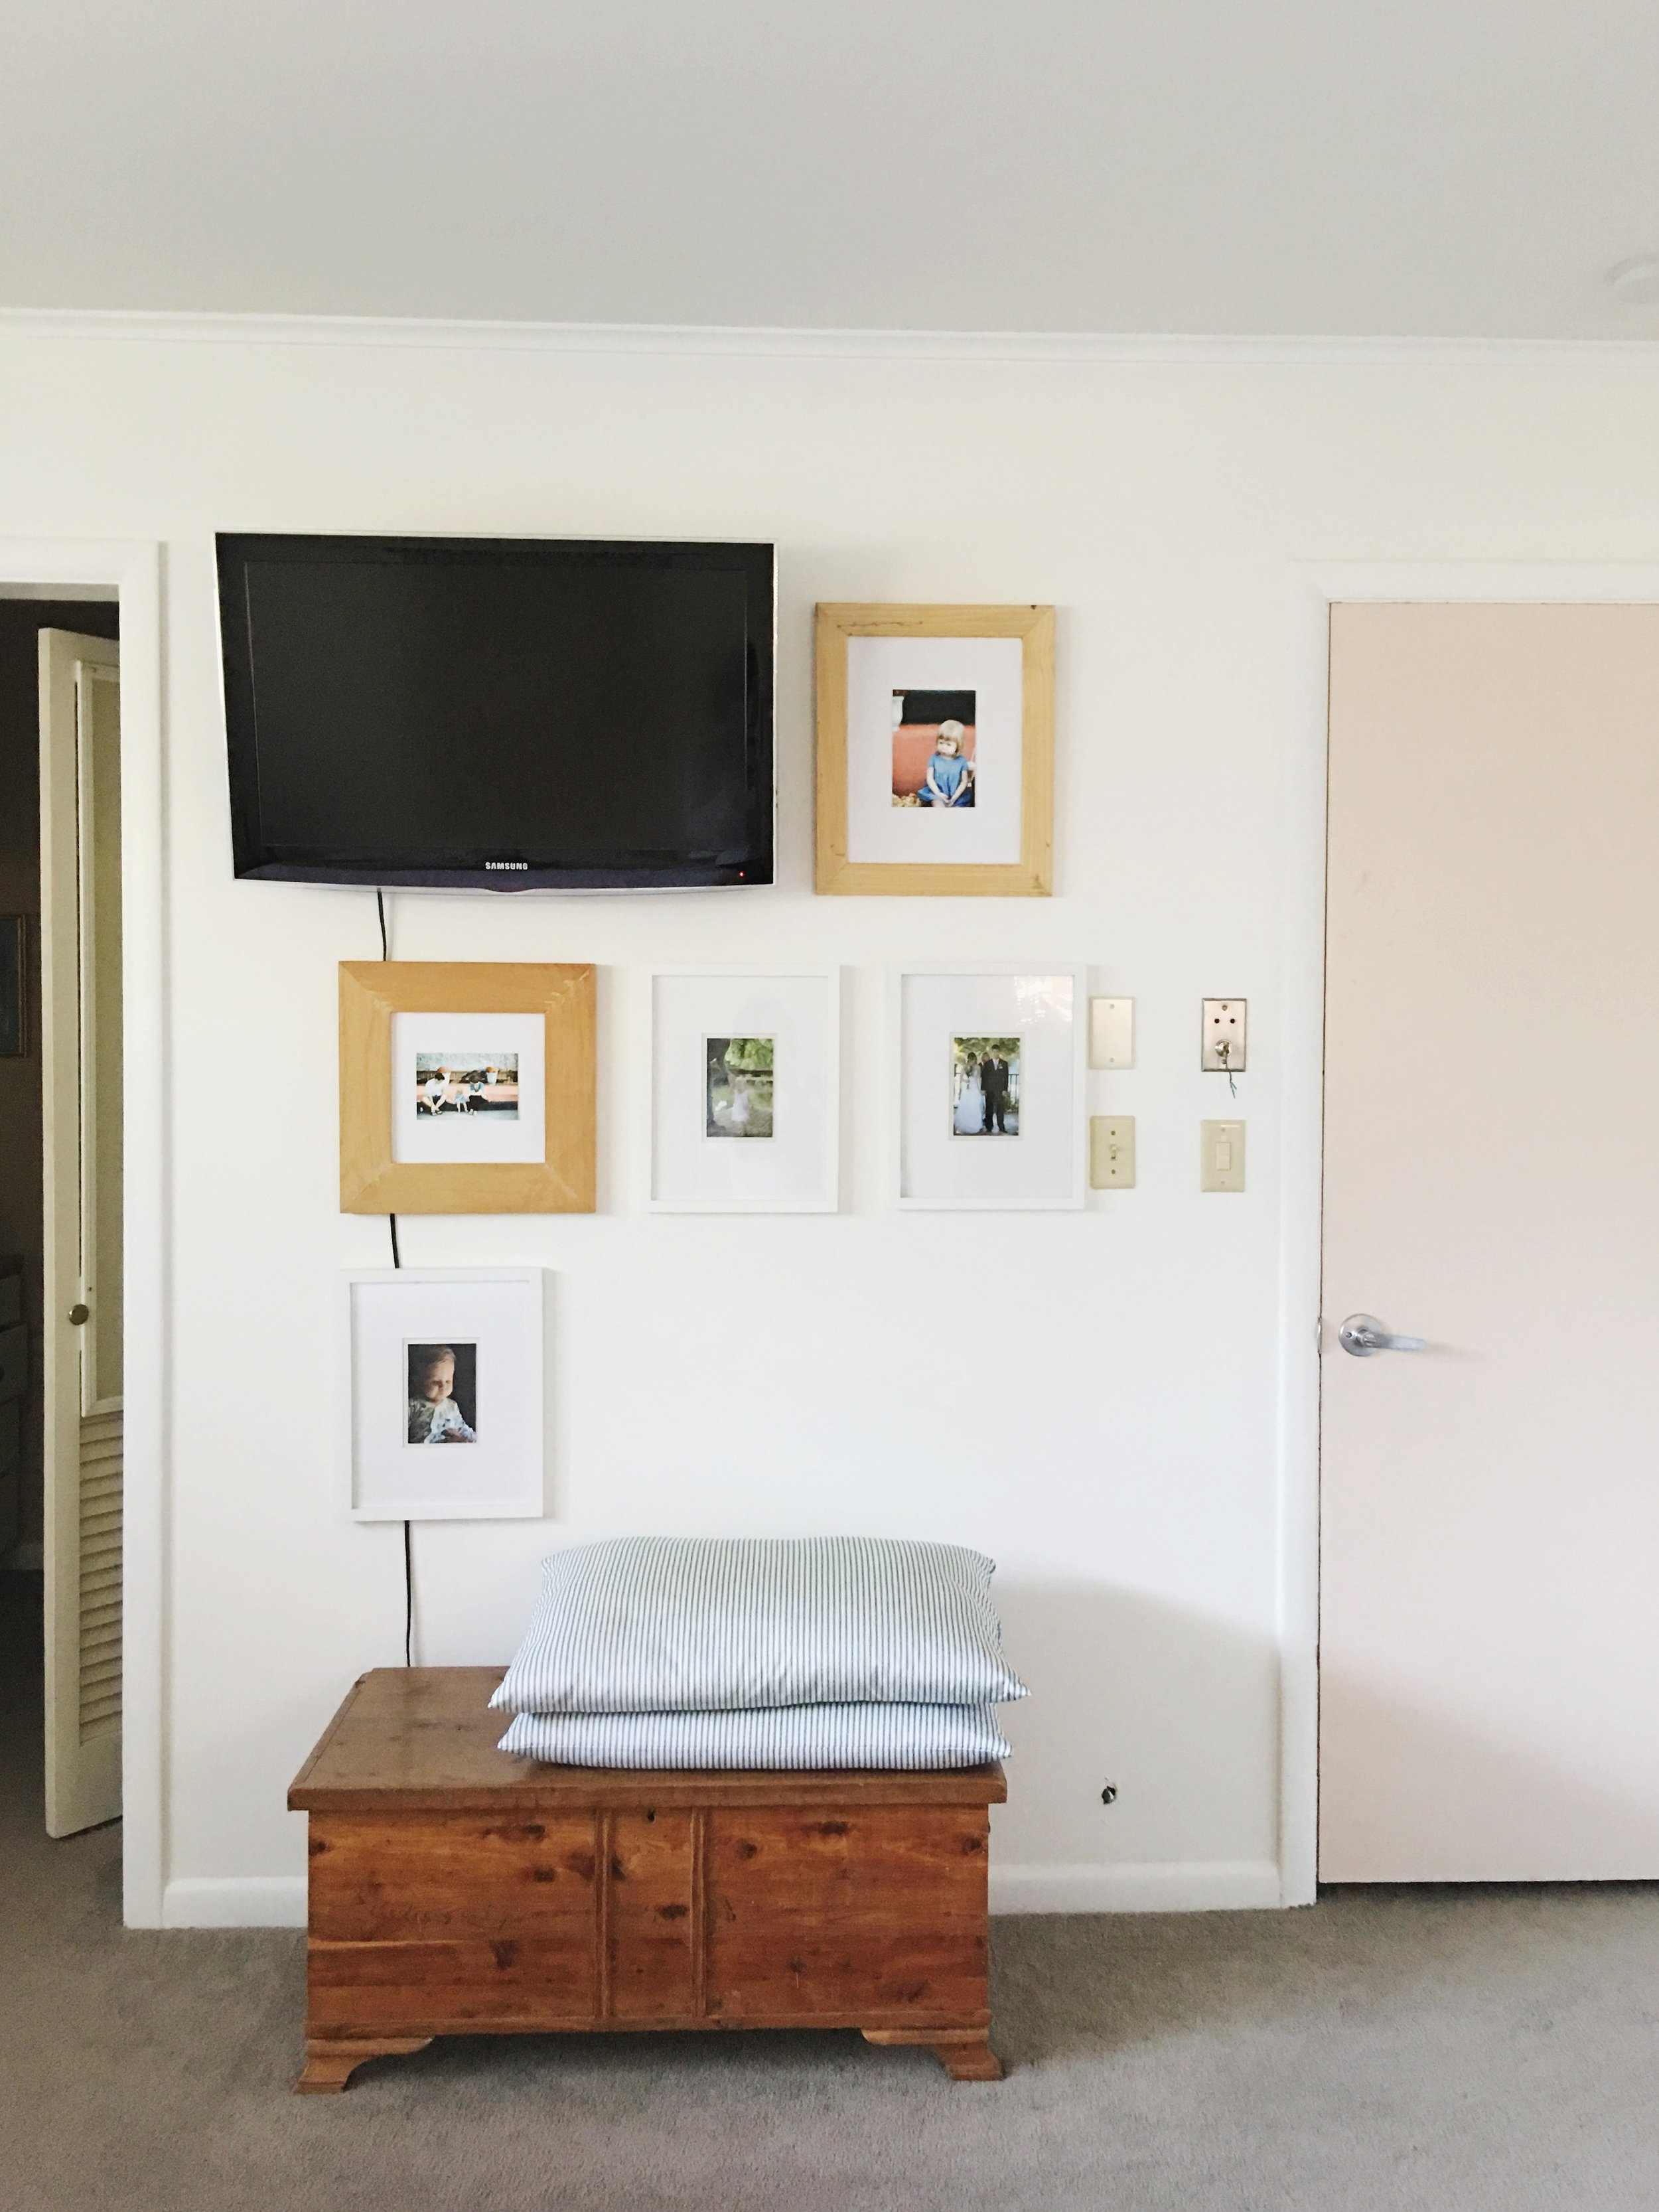 Although I still need to hide my TV cord and patch a hole in the wall, I'm on my way to a family photo gallery wall in my bedroom. I used a mix of thrift store finds and new frames. -Palmer